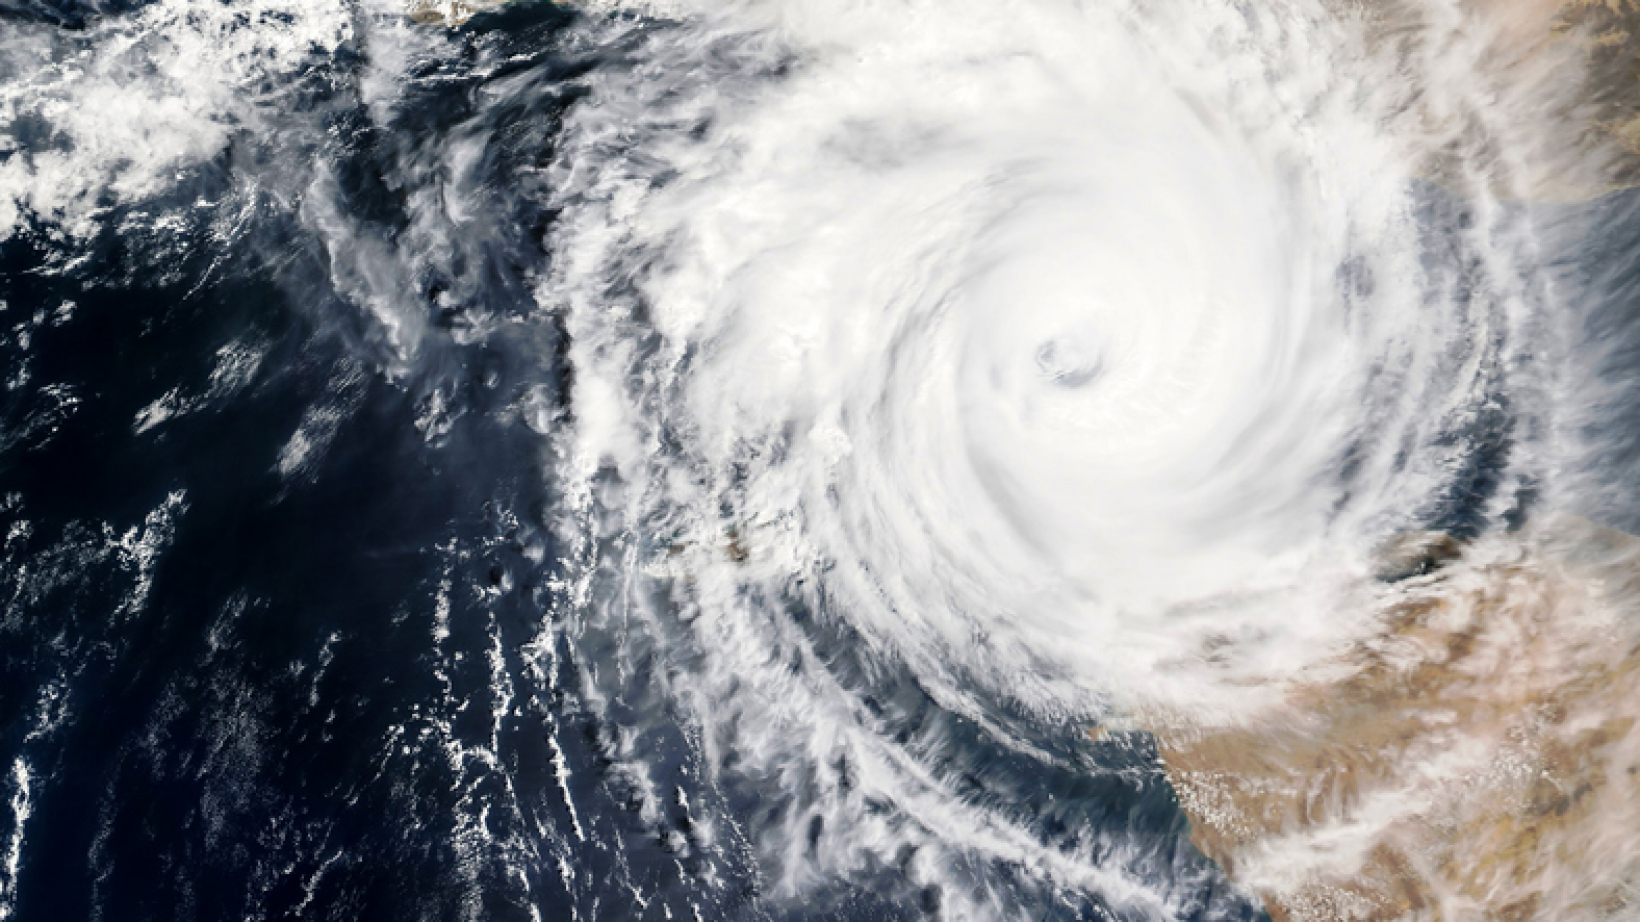 As the effects of climate change continue to impact our day-to-day lives, European GNSS will play an increasing role in meteorology and weather forecasting.